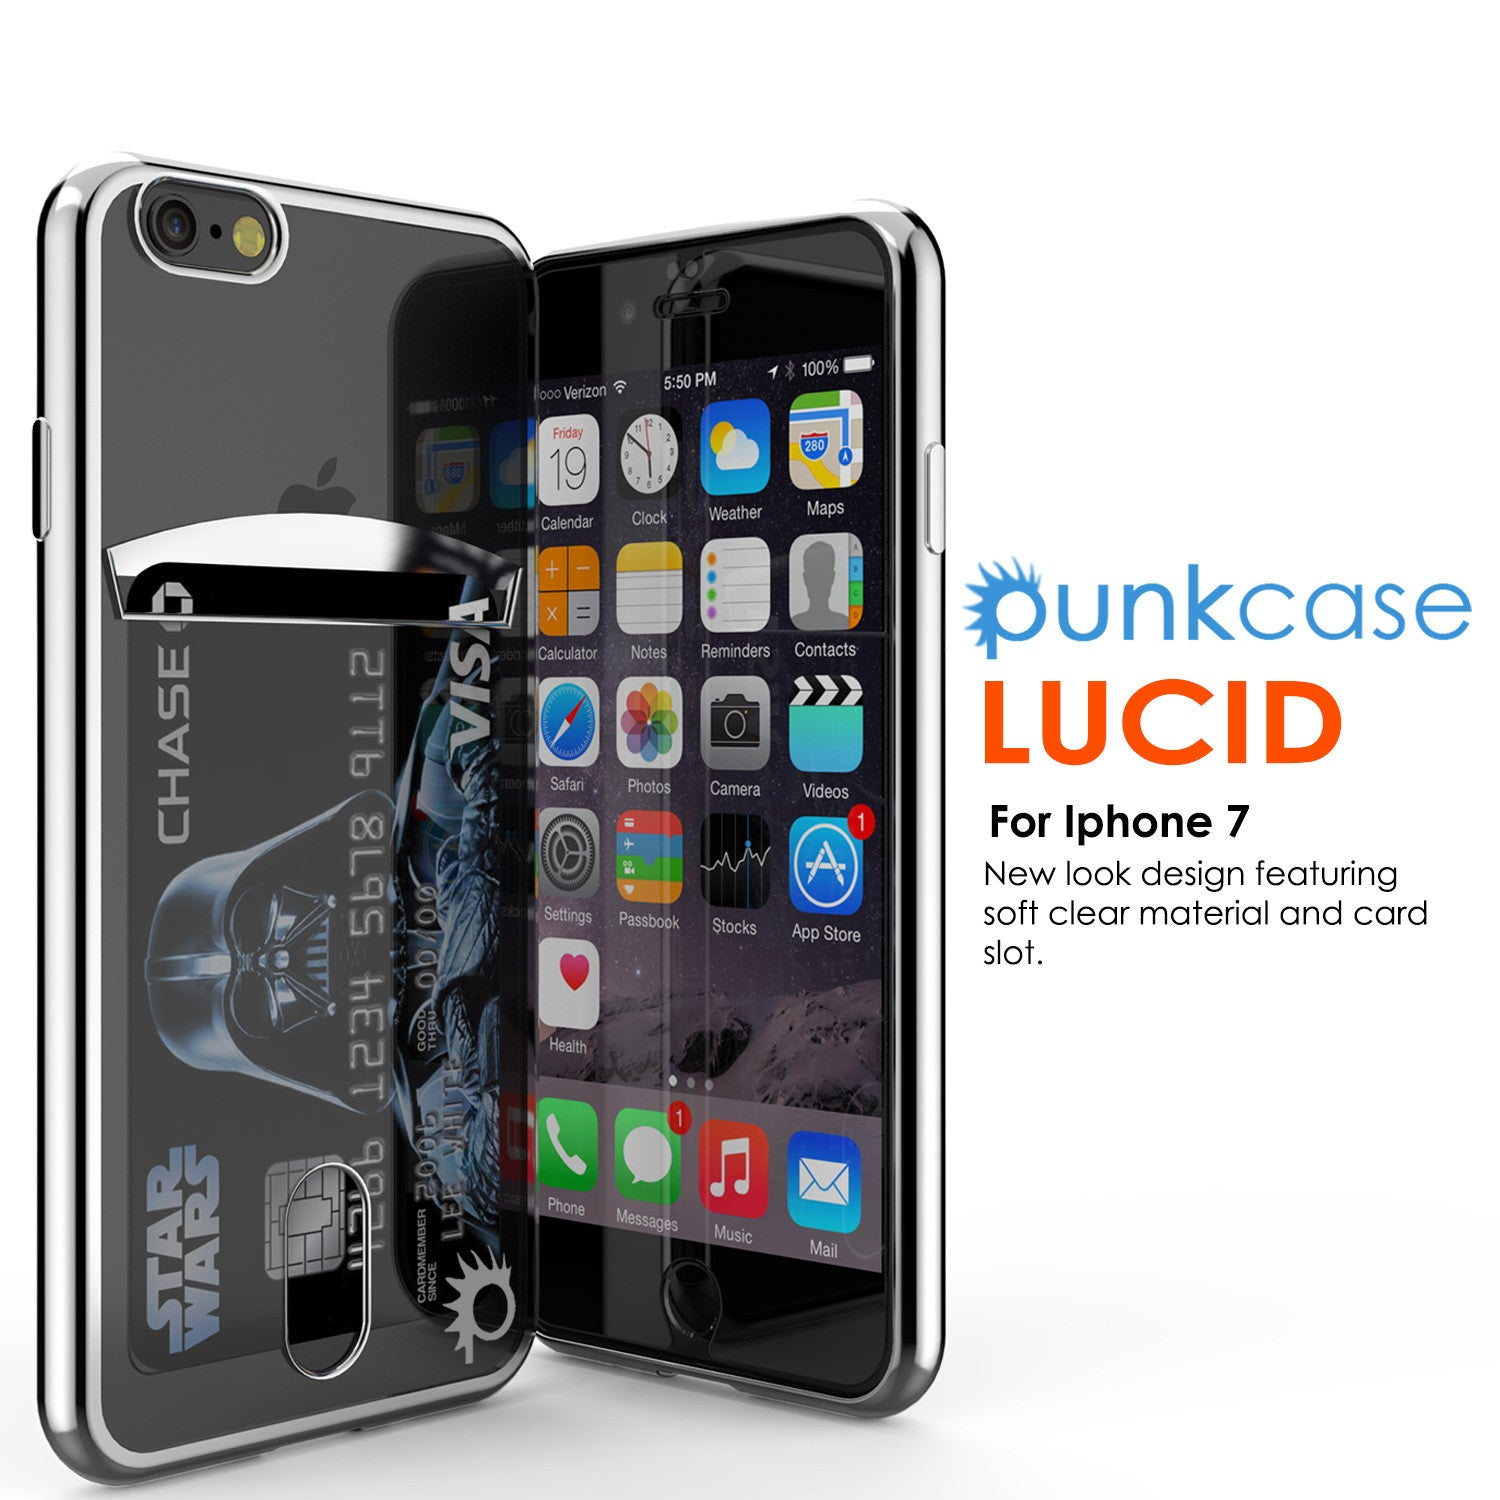 iPhone 7 Case, PUNKCASE® LUCID Silver Series | Card Slot | SHIELD Screen Protector | Ultra fit